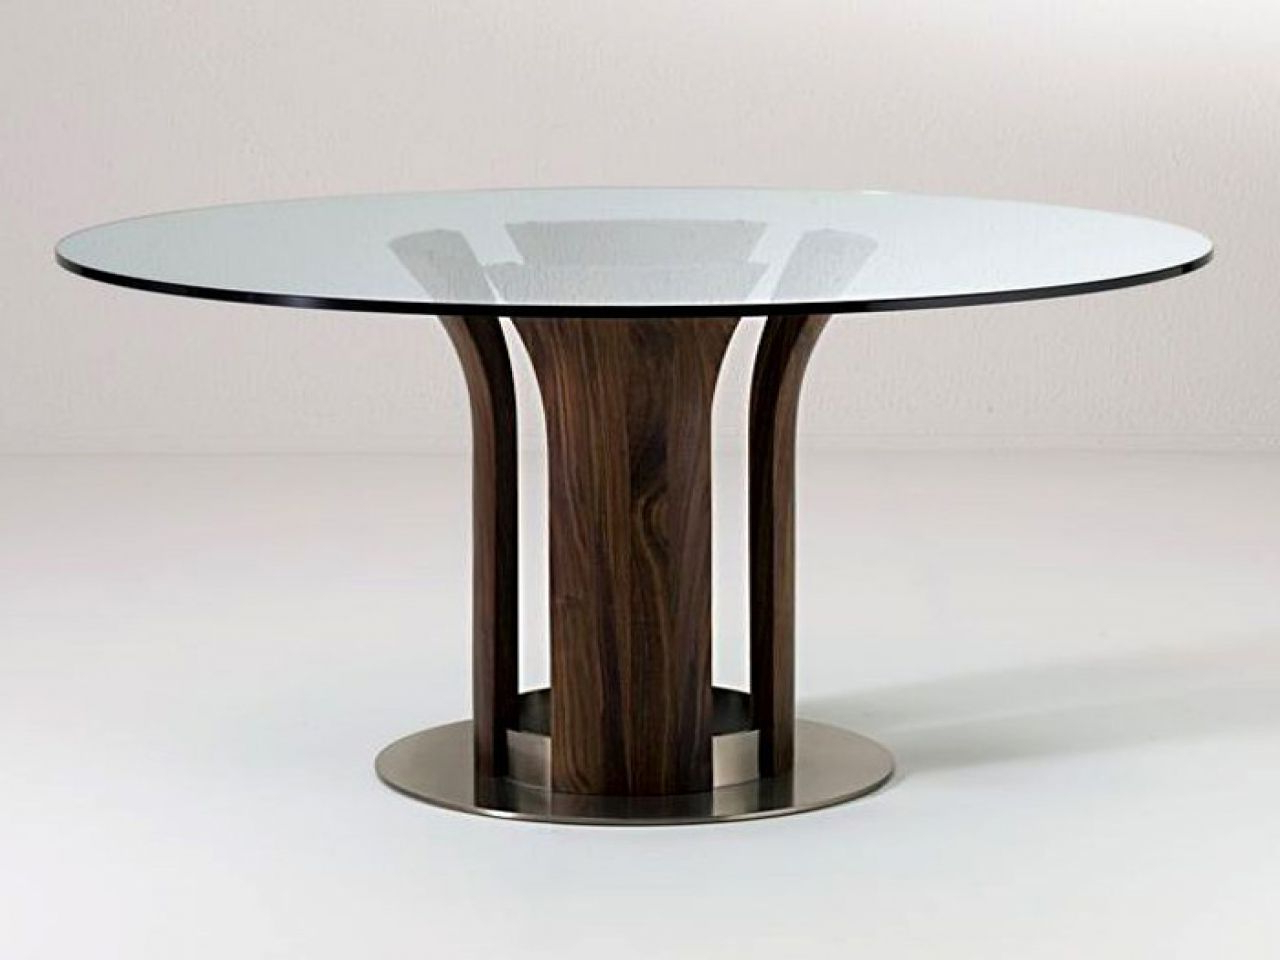 Modern Round Glass Top Dining Tables For Newest Glass Top Dining Room Sets Round Table Modern With Wooden (View 17 of 25)